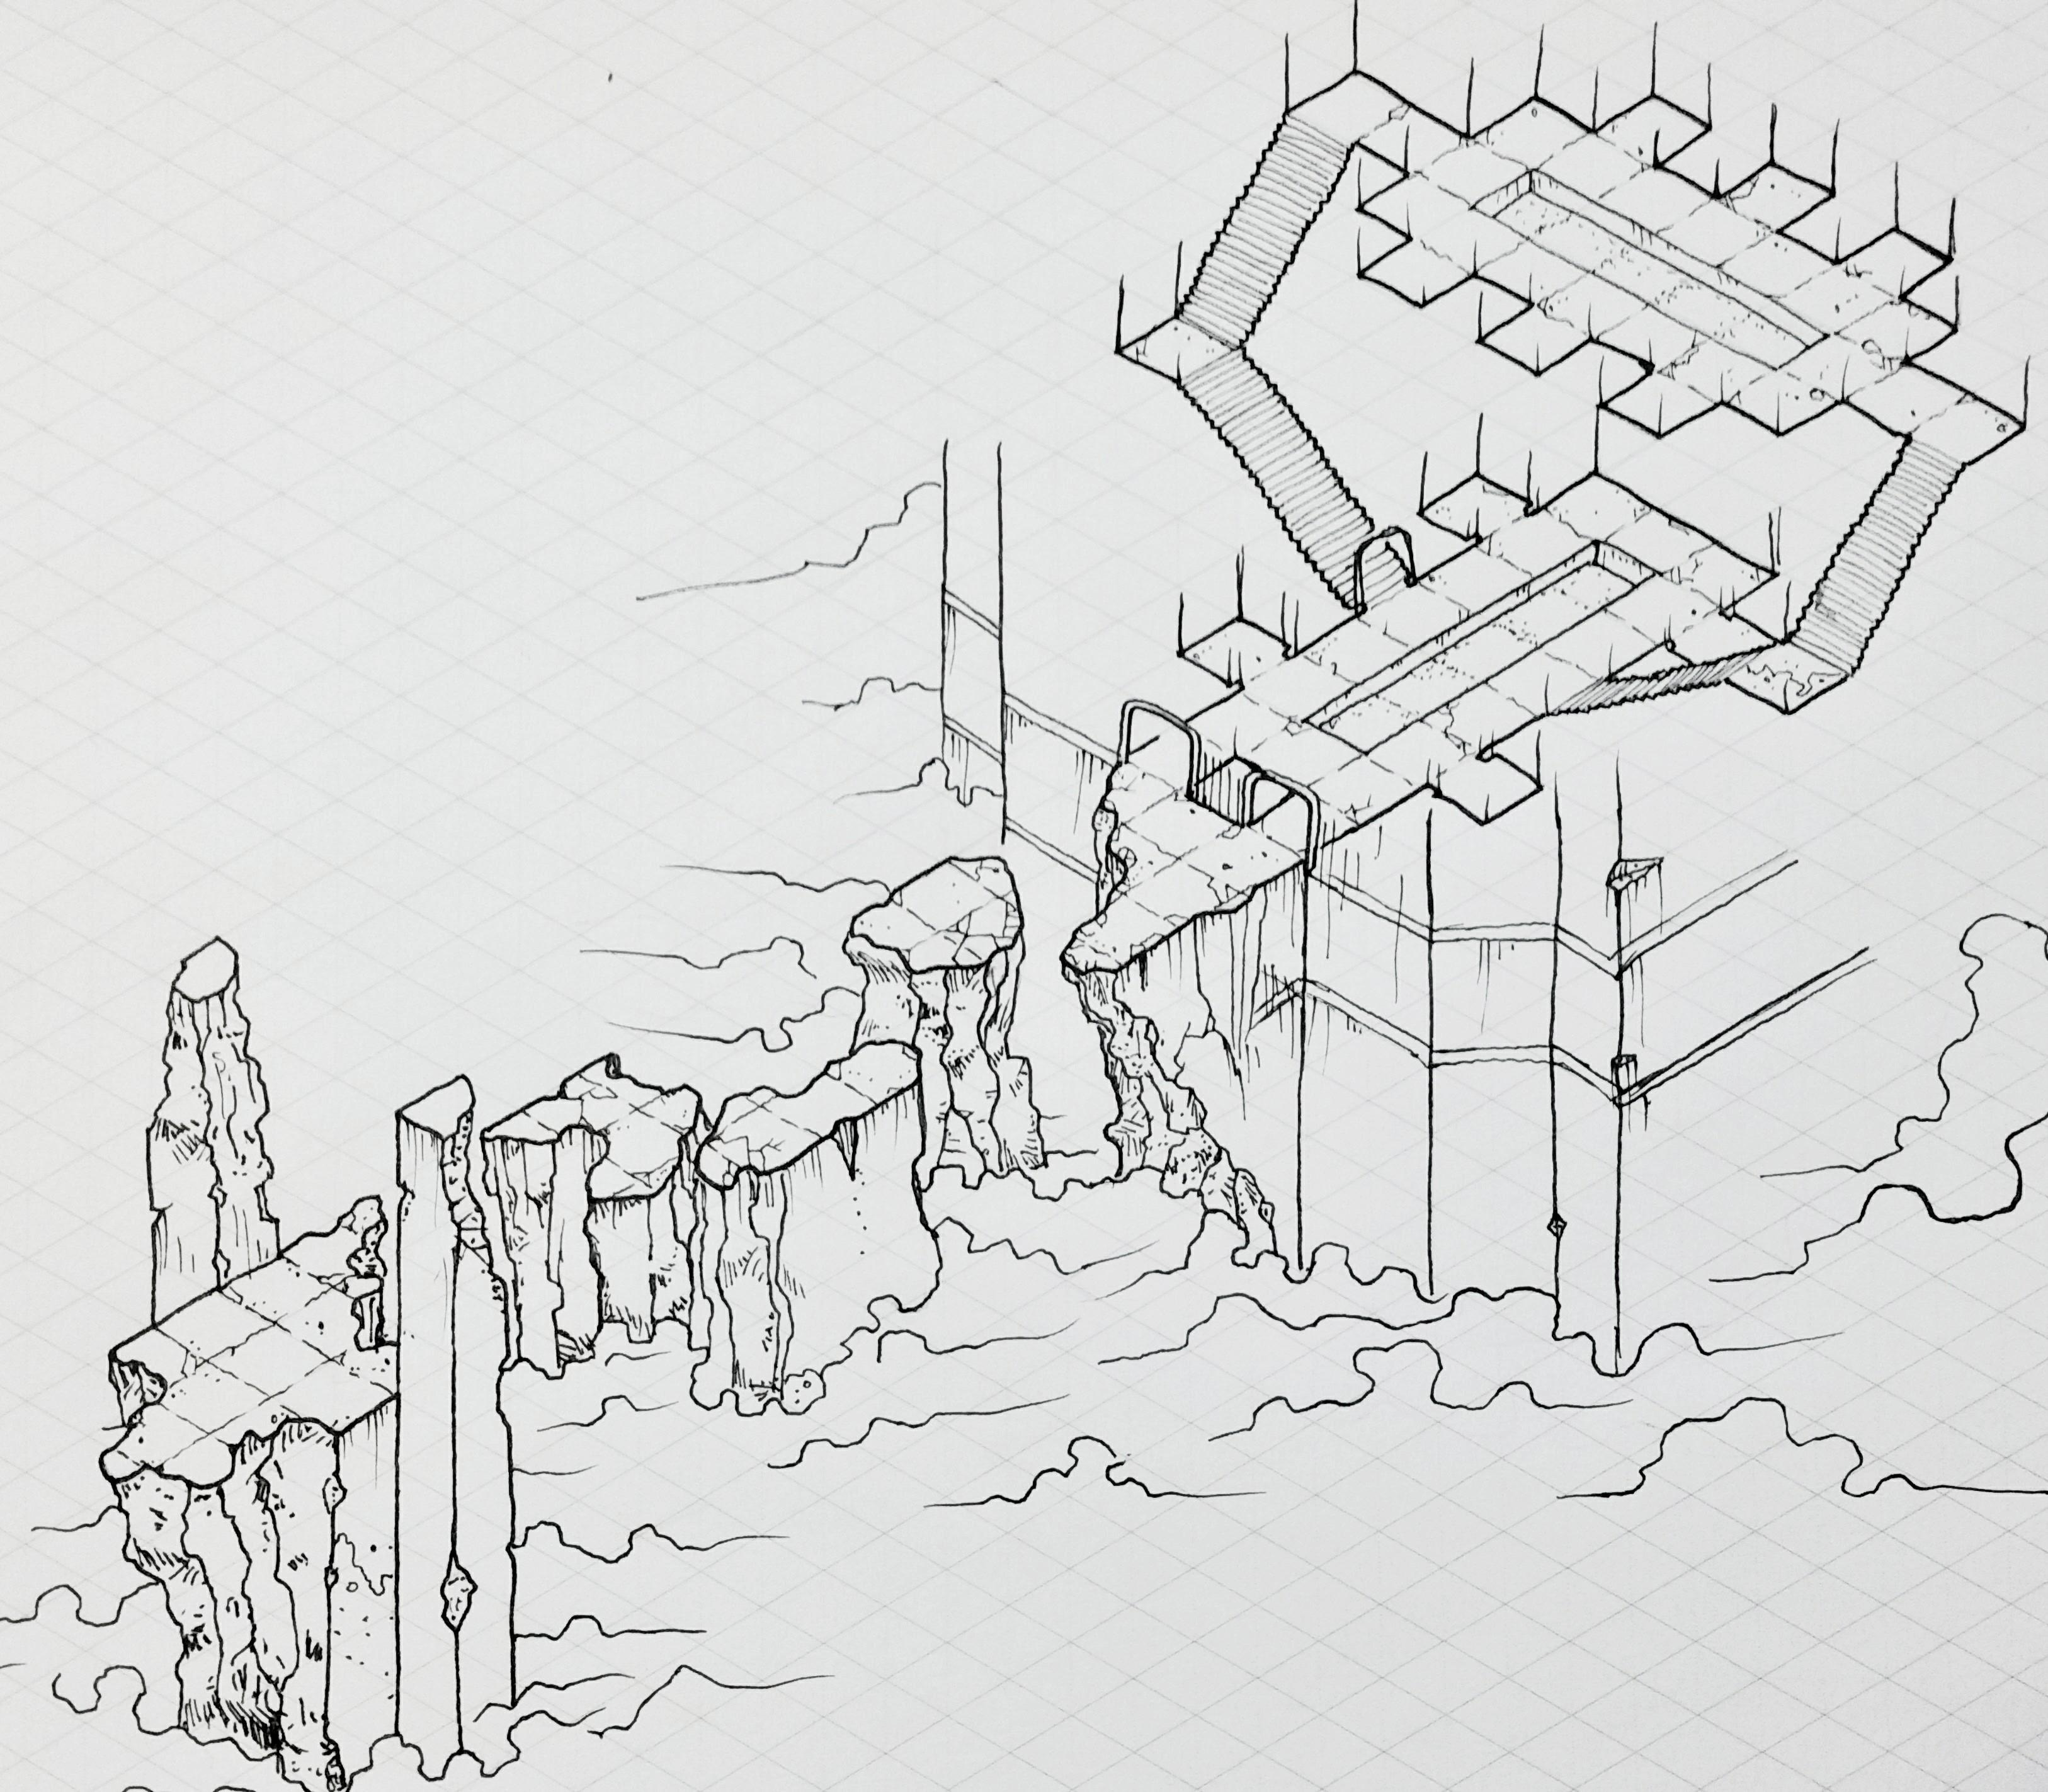 [Art] Isometric Map Art I drew a while back : DnD